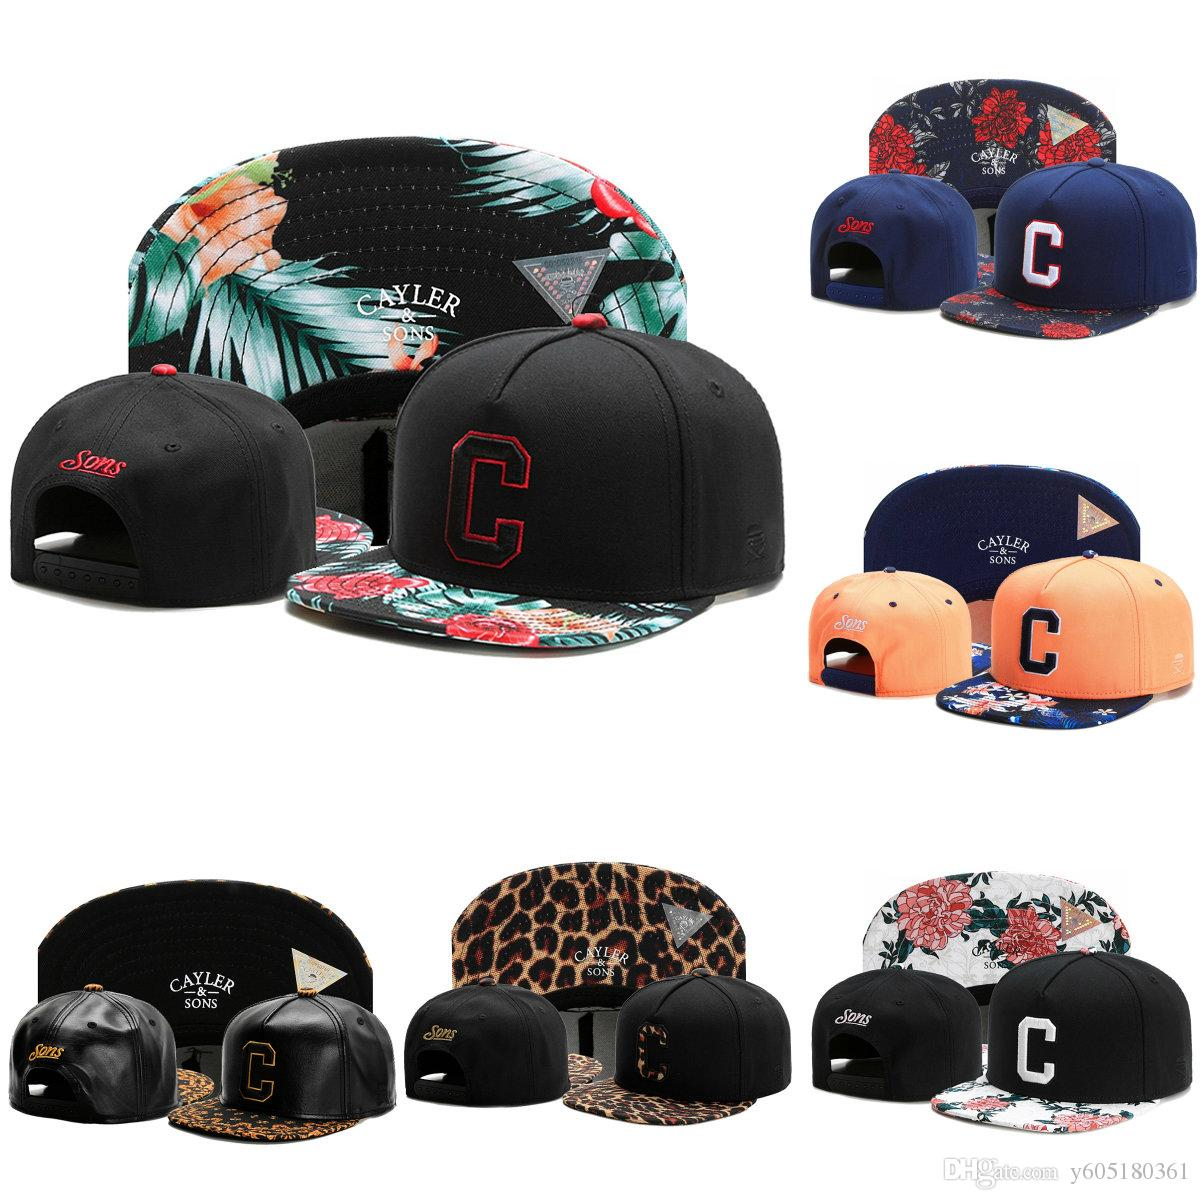 Youth Men Women Caps Snapback Hip Hop Hat Cap Basketball Snapbacks Hats  Cayler And Sons Corner Casual Baseball Hats Letter C 20 Styles La Cap  Flexfit Cap ... fcc0c0e161b